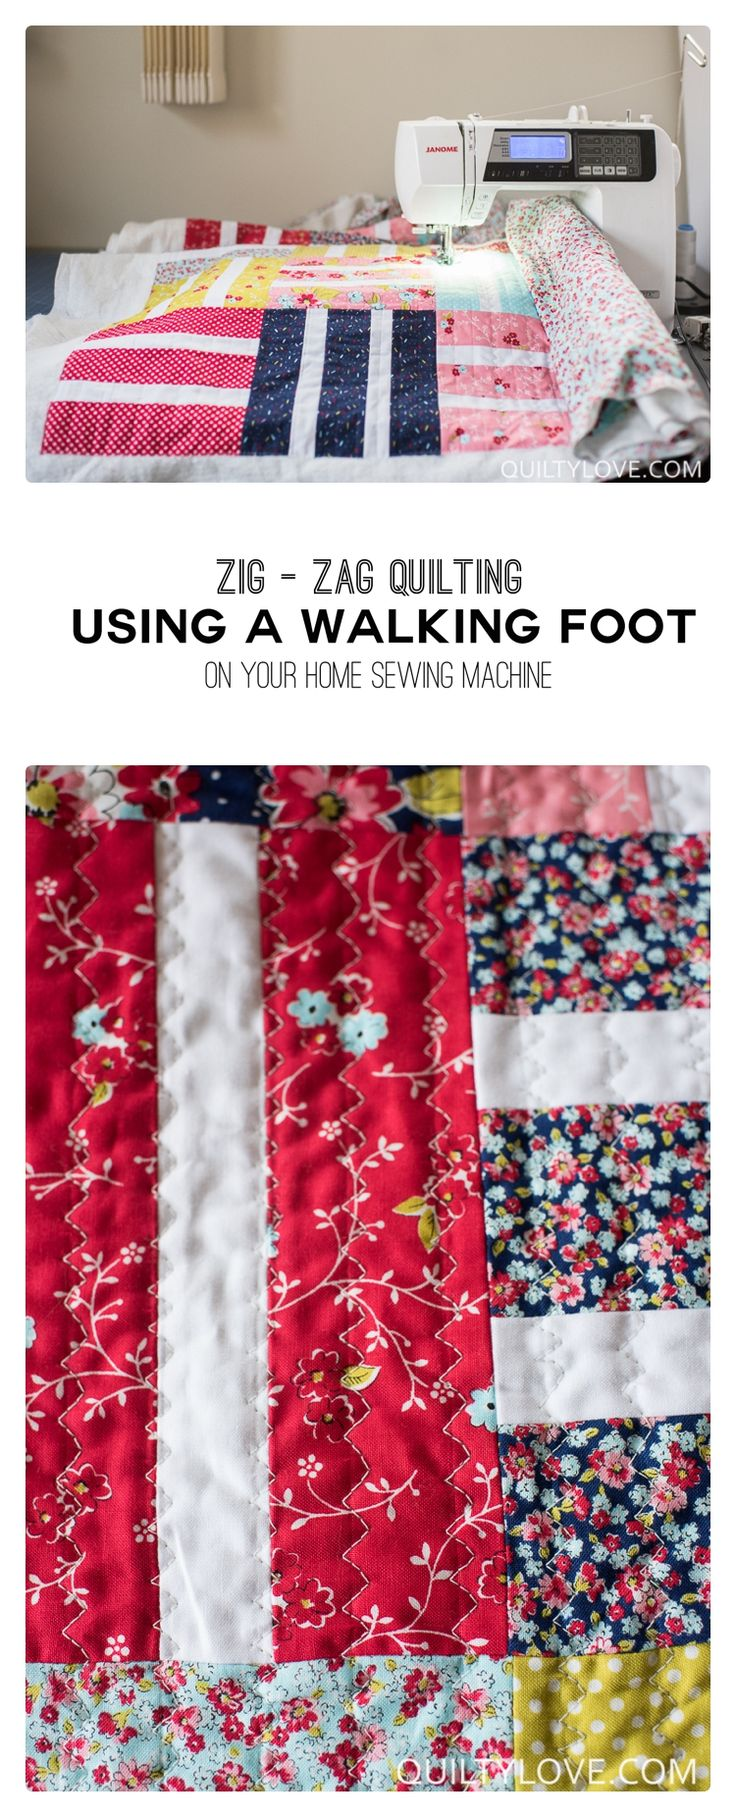 How to quilt zig zag walking foot quilting using your walking foot on your home sewing machine. Easy walking foot quilting to quilt your own quilts.